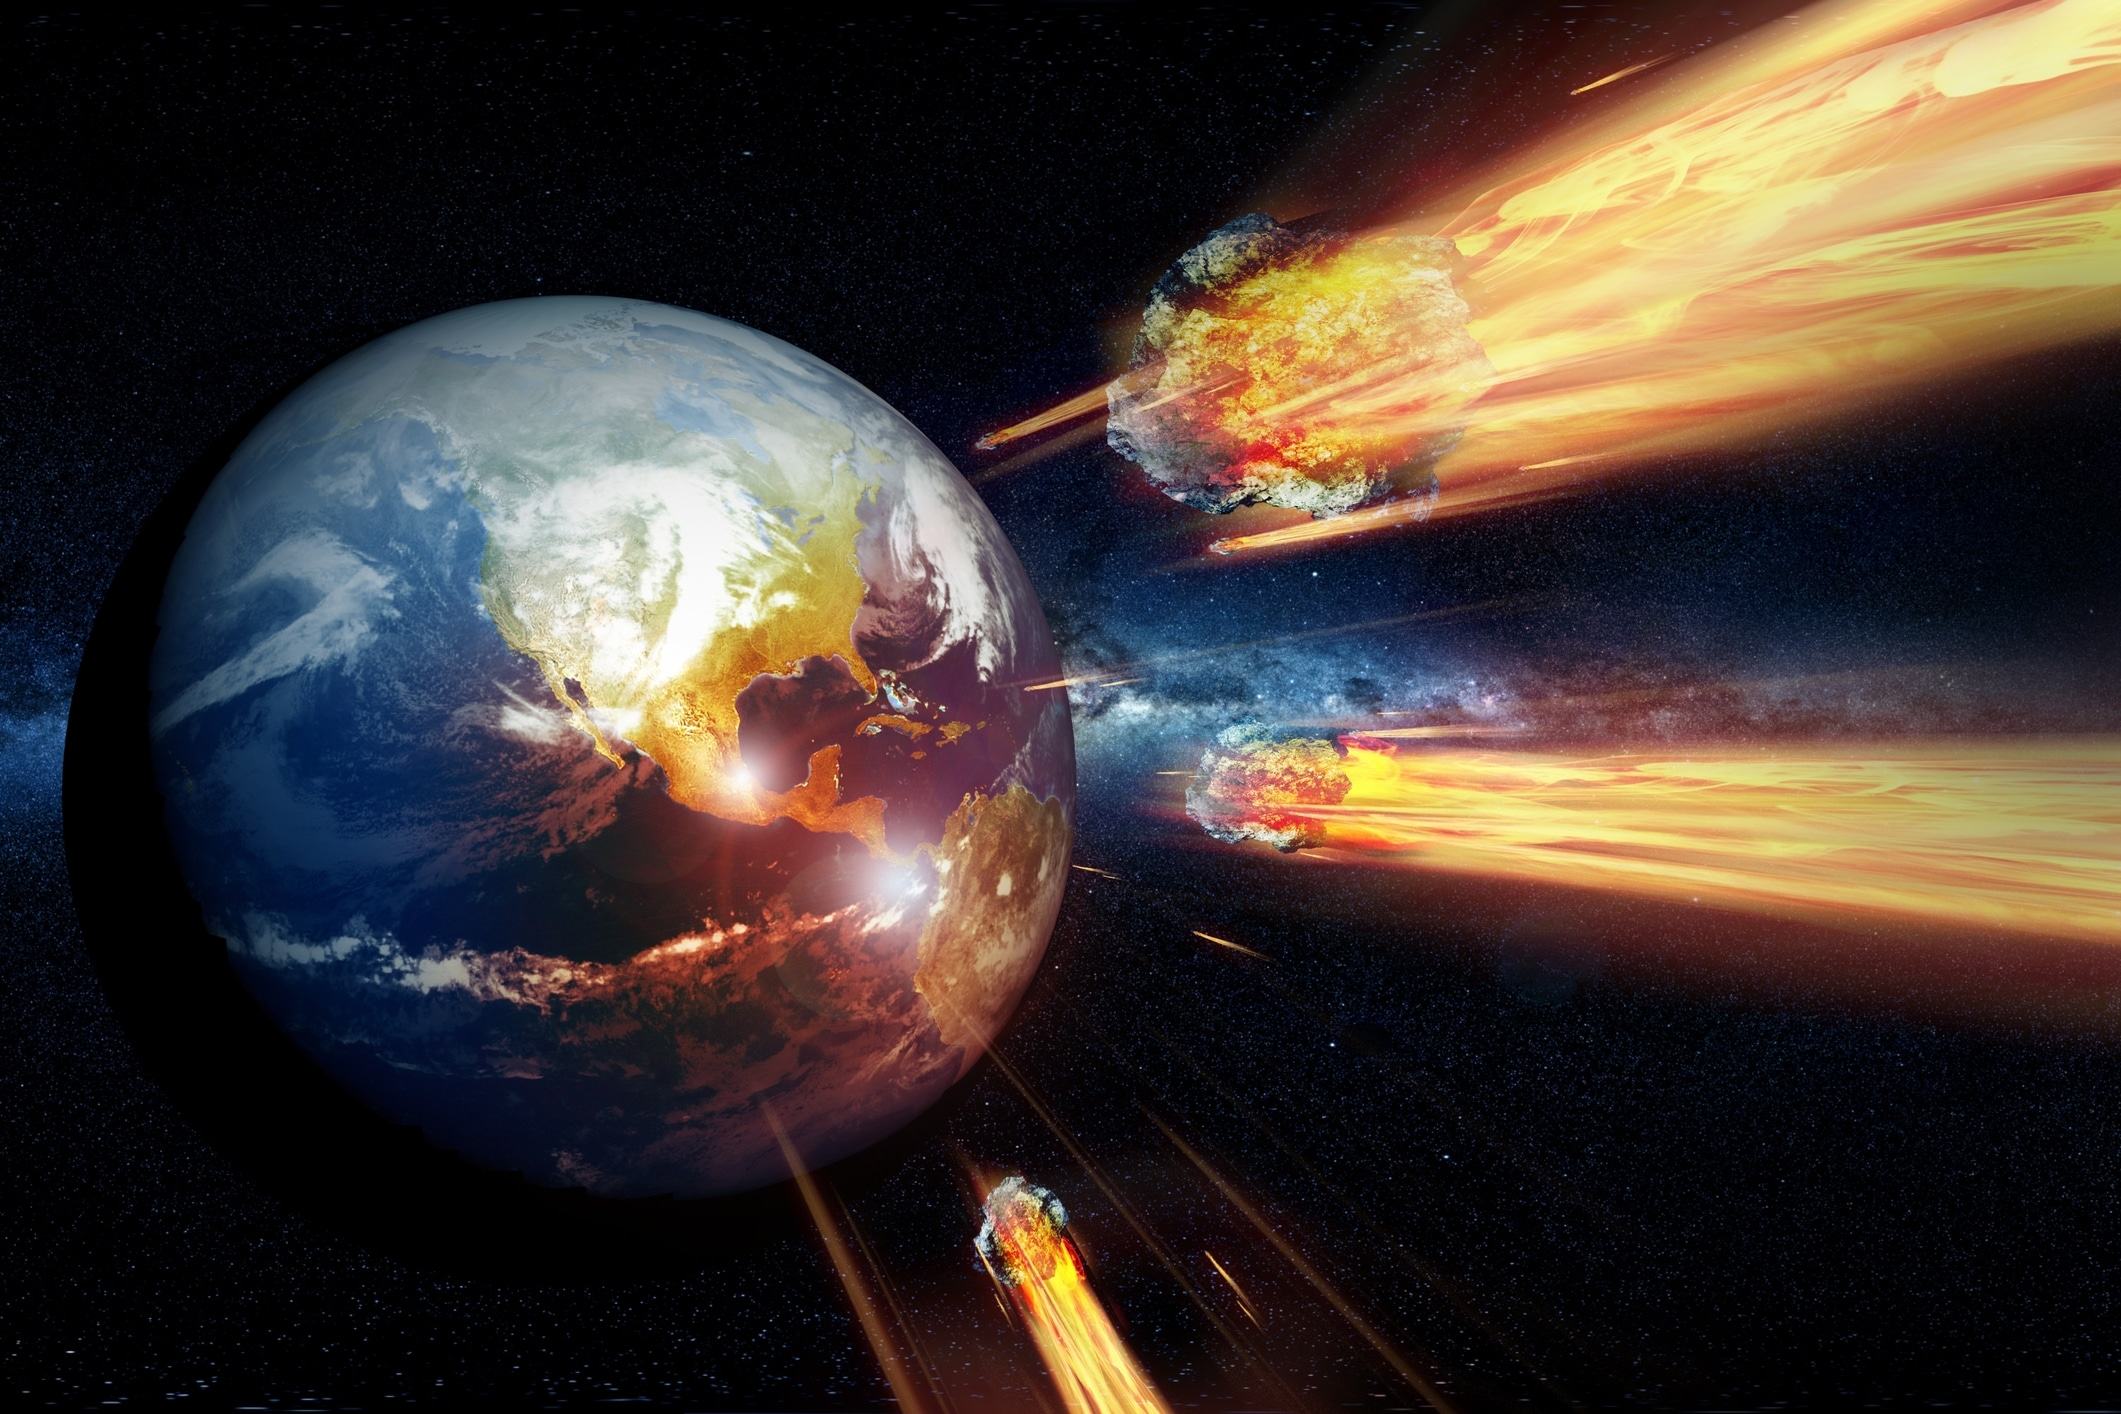 VIDEO:  CQ BIBLE 101 – What's Going to Happen at the End of the World?